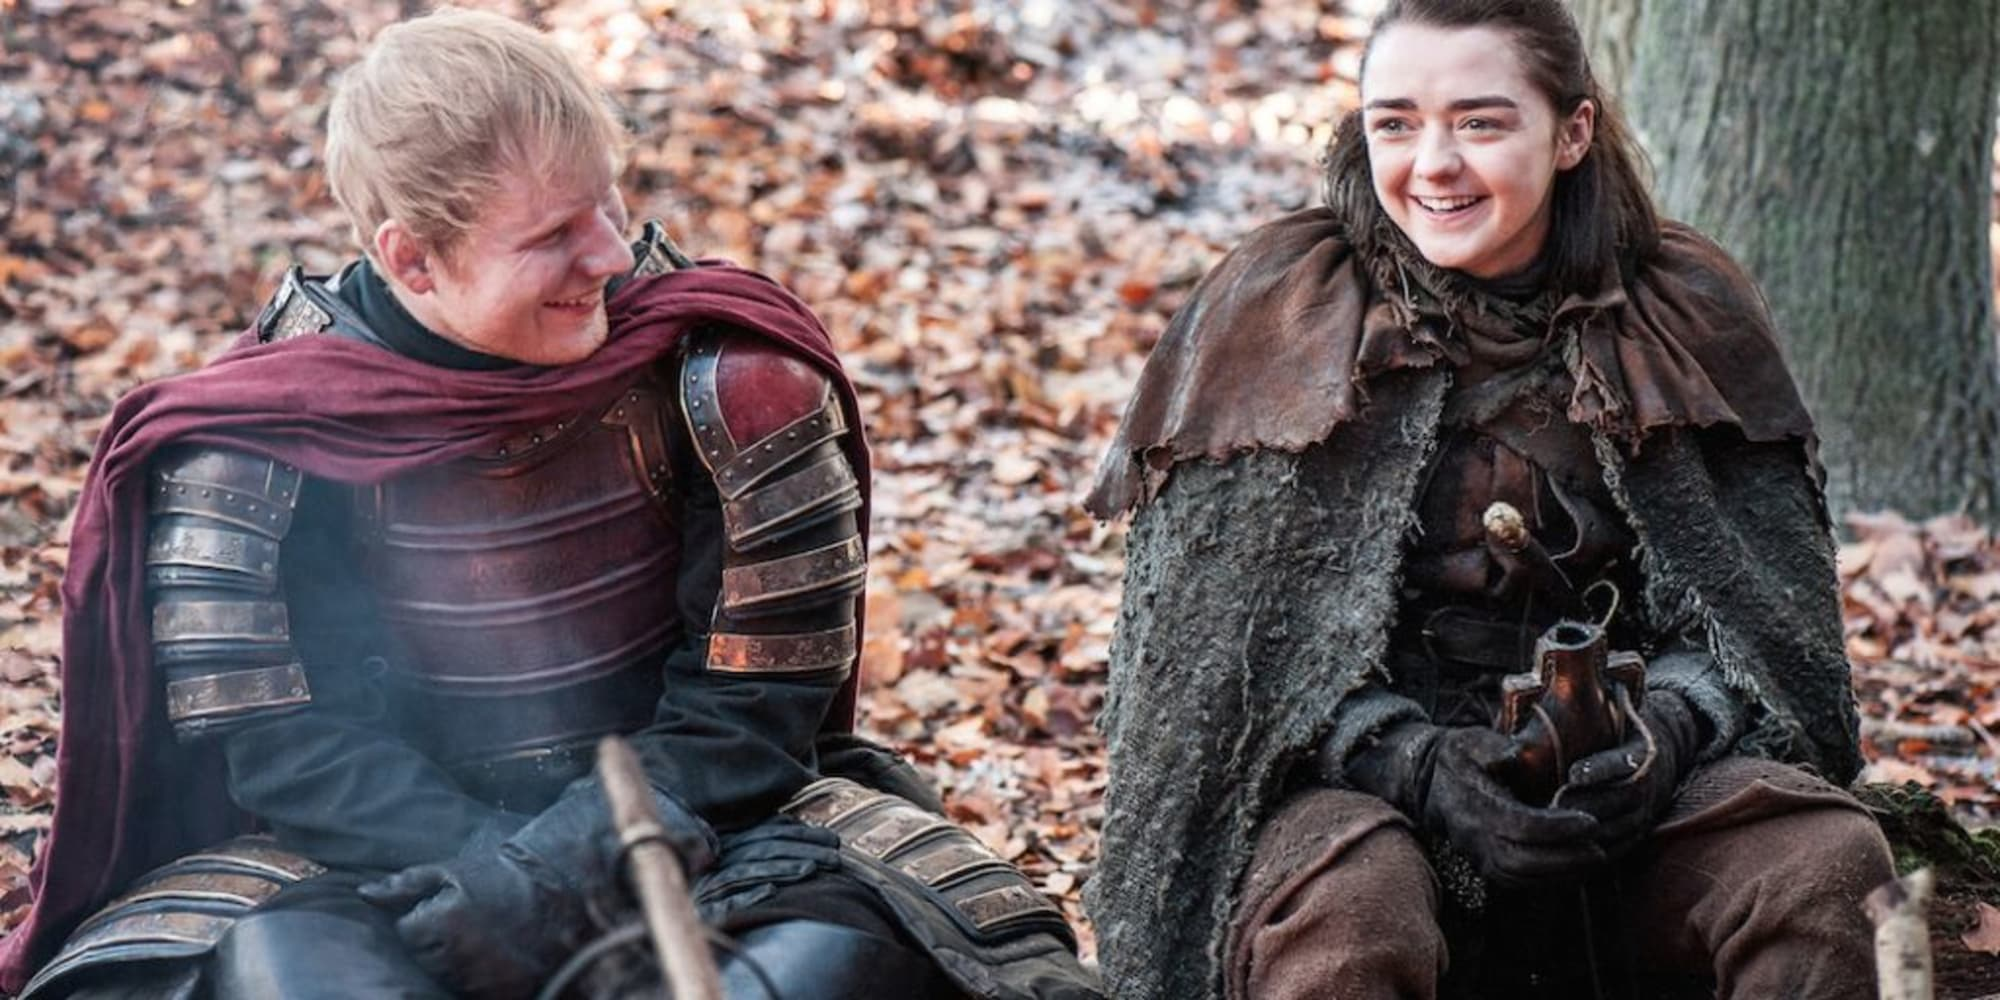 How Ed Sheeran got on Game of Thrones